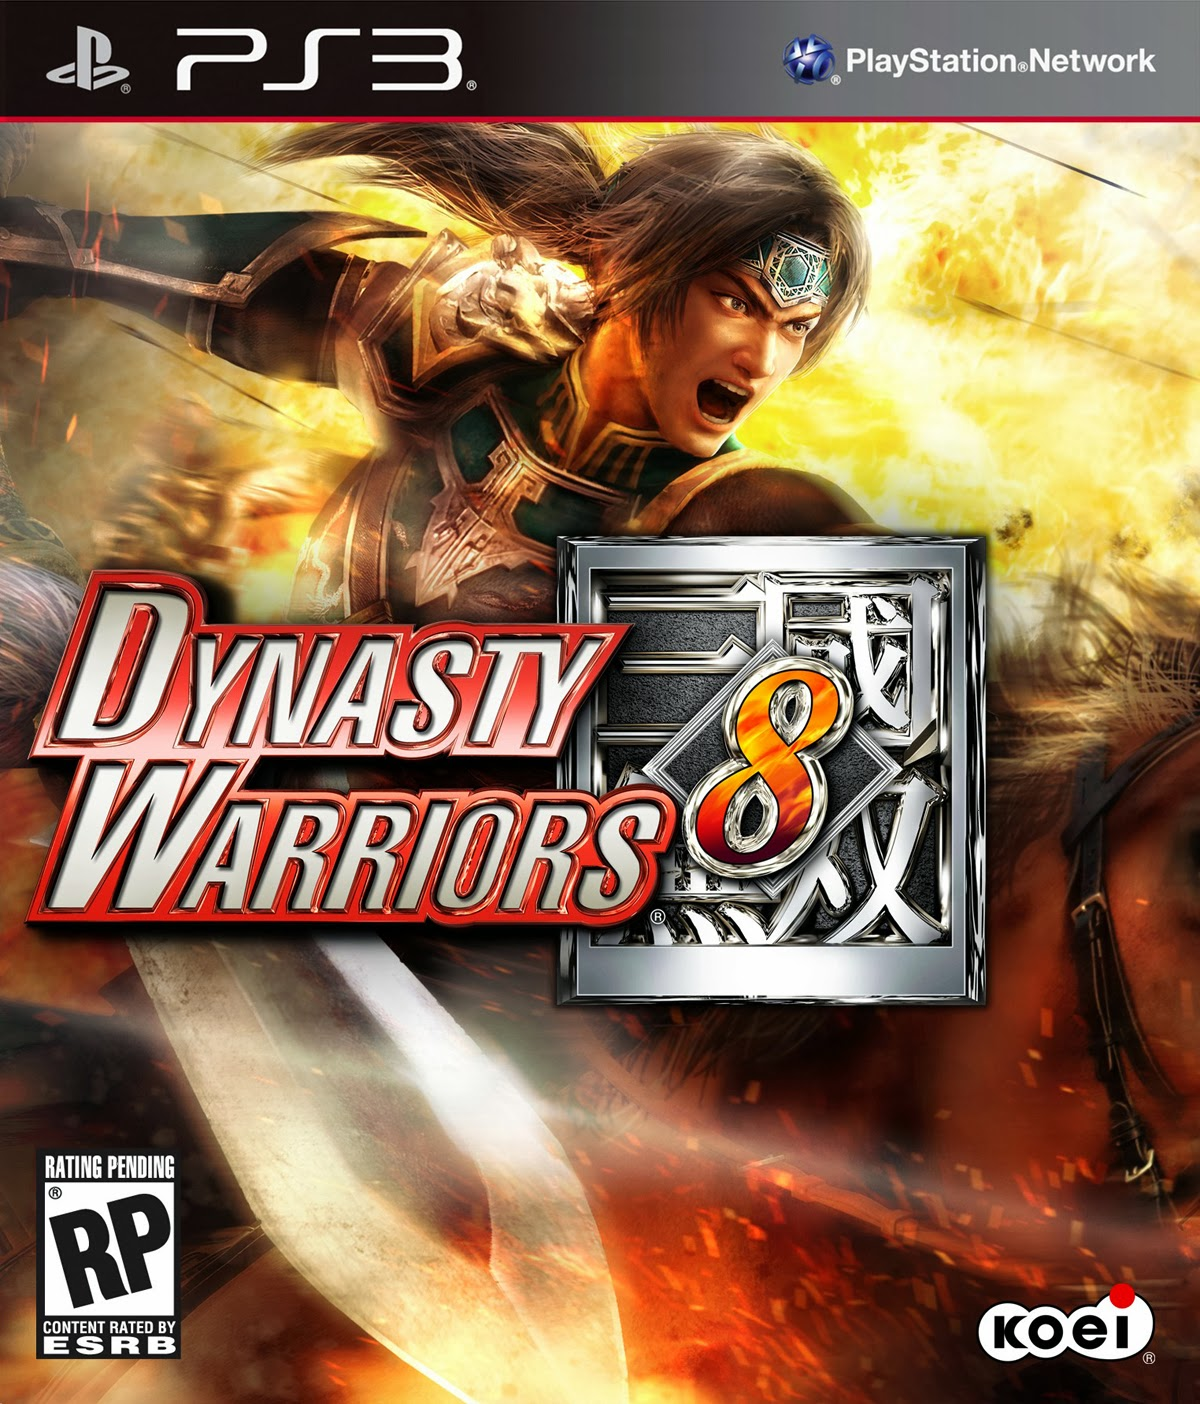 Dynasty Warriors 8 PS3 IMARS Direct Download Links